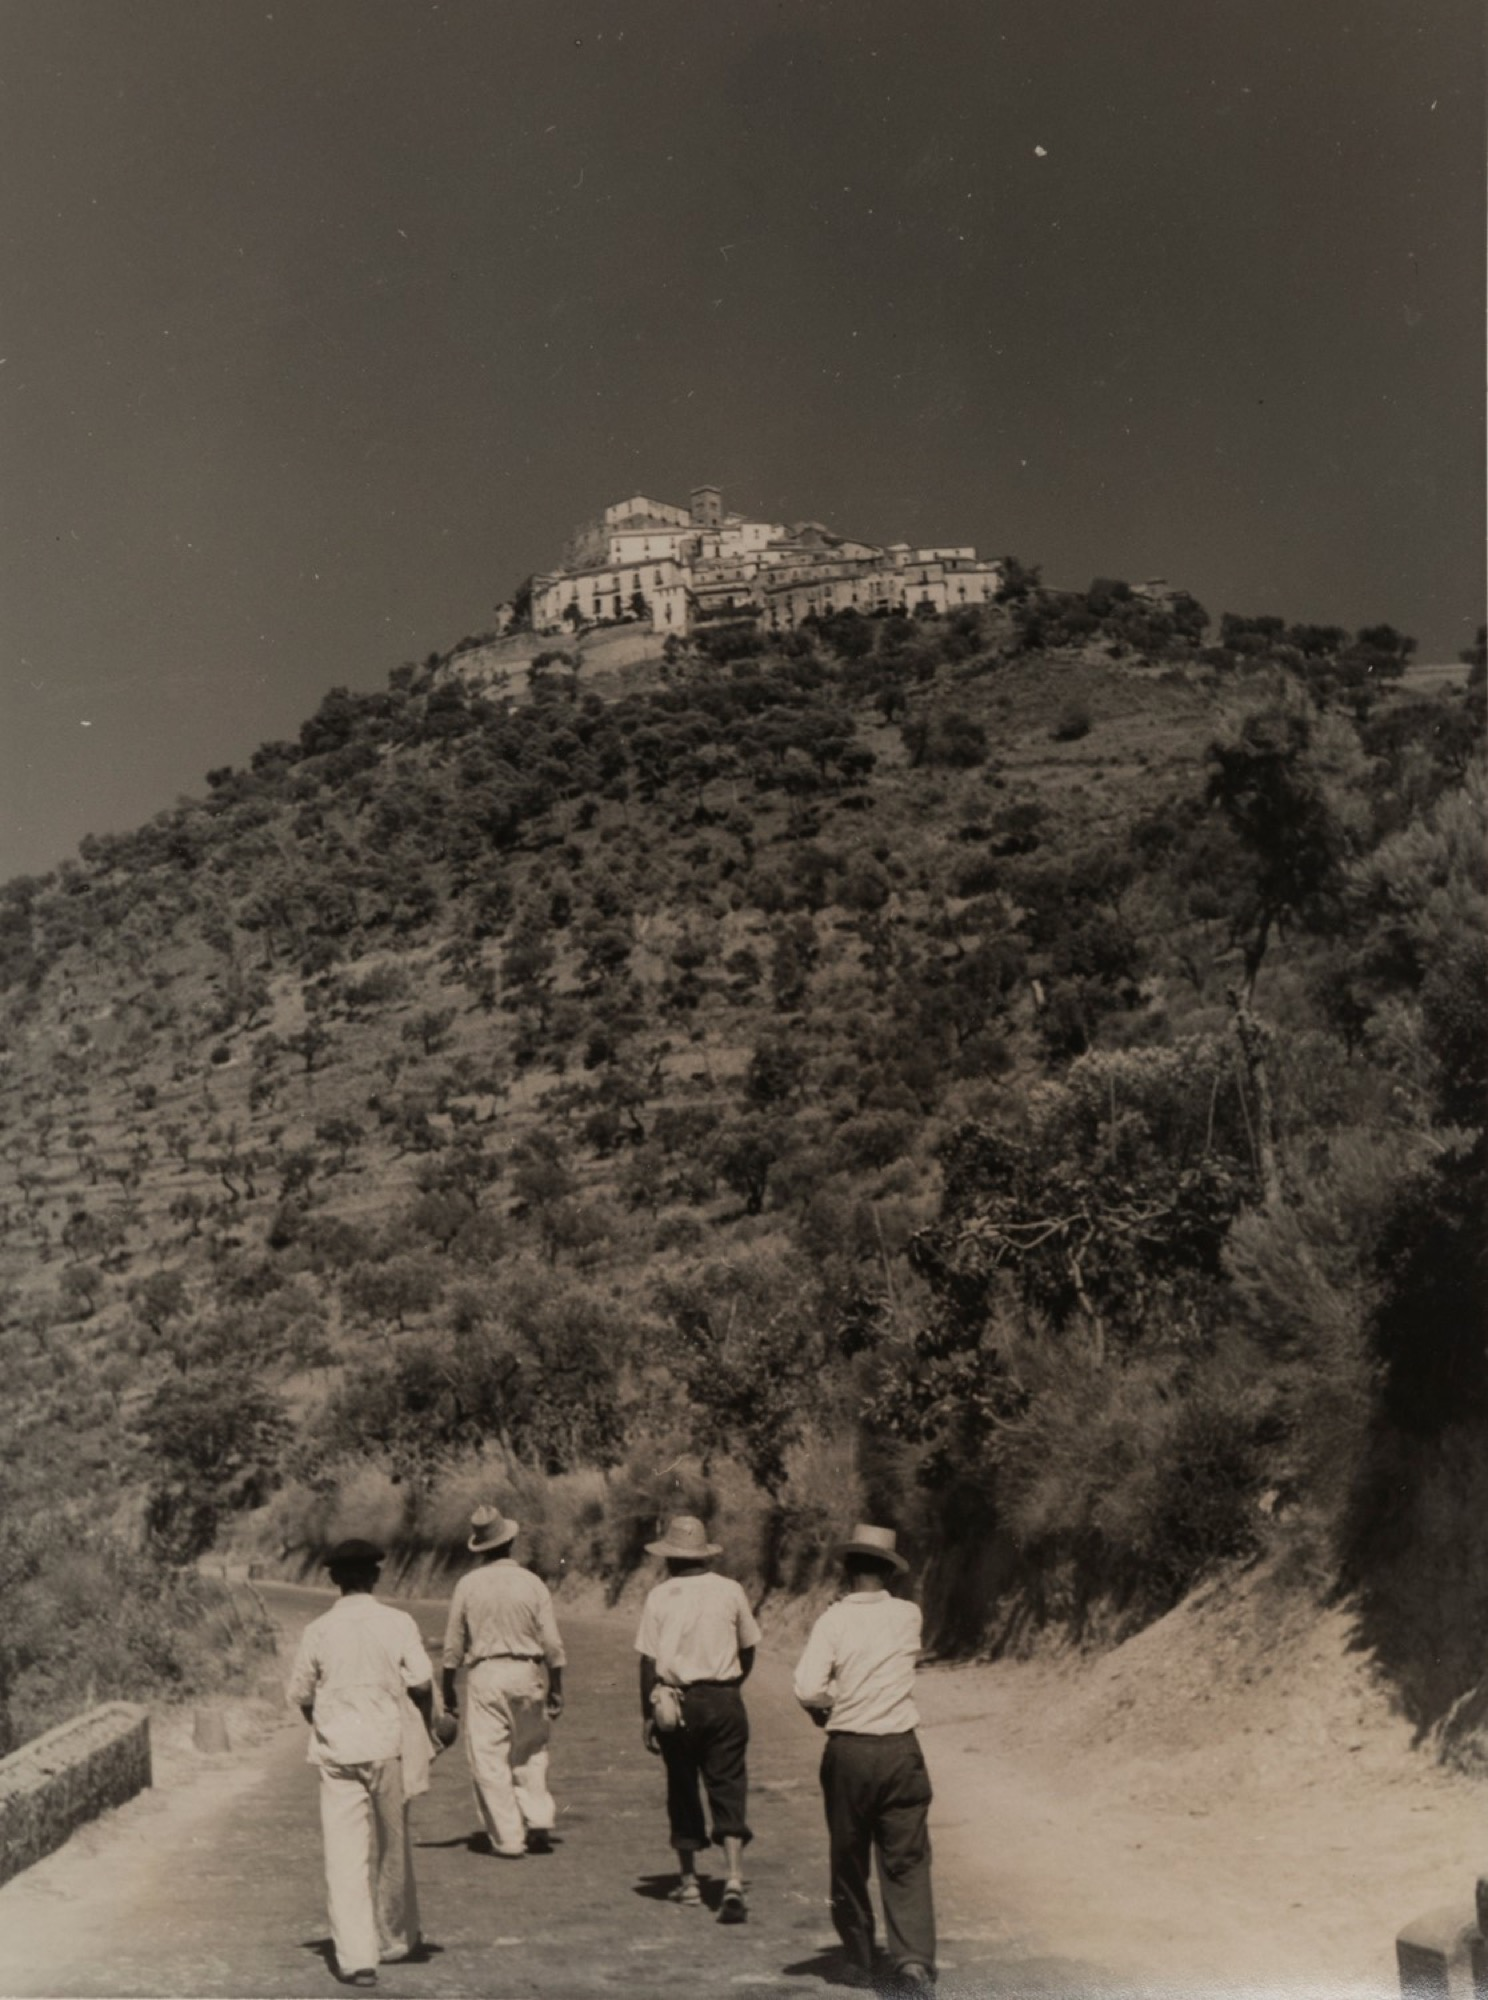 Giulio Parisio - Landscapes, years 1930/1940 - Eight vintage gelatin silver prints [...] - Image 3 of 9